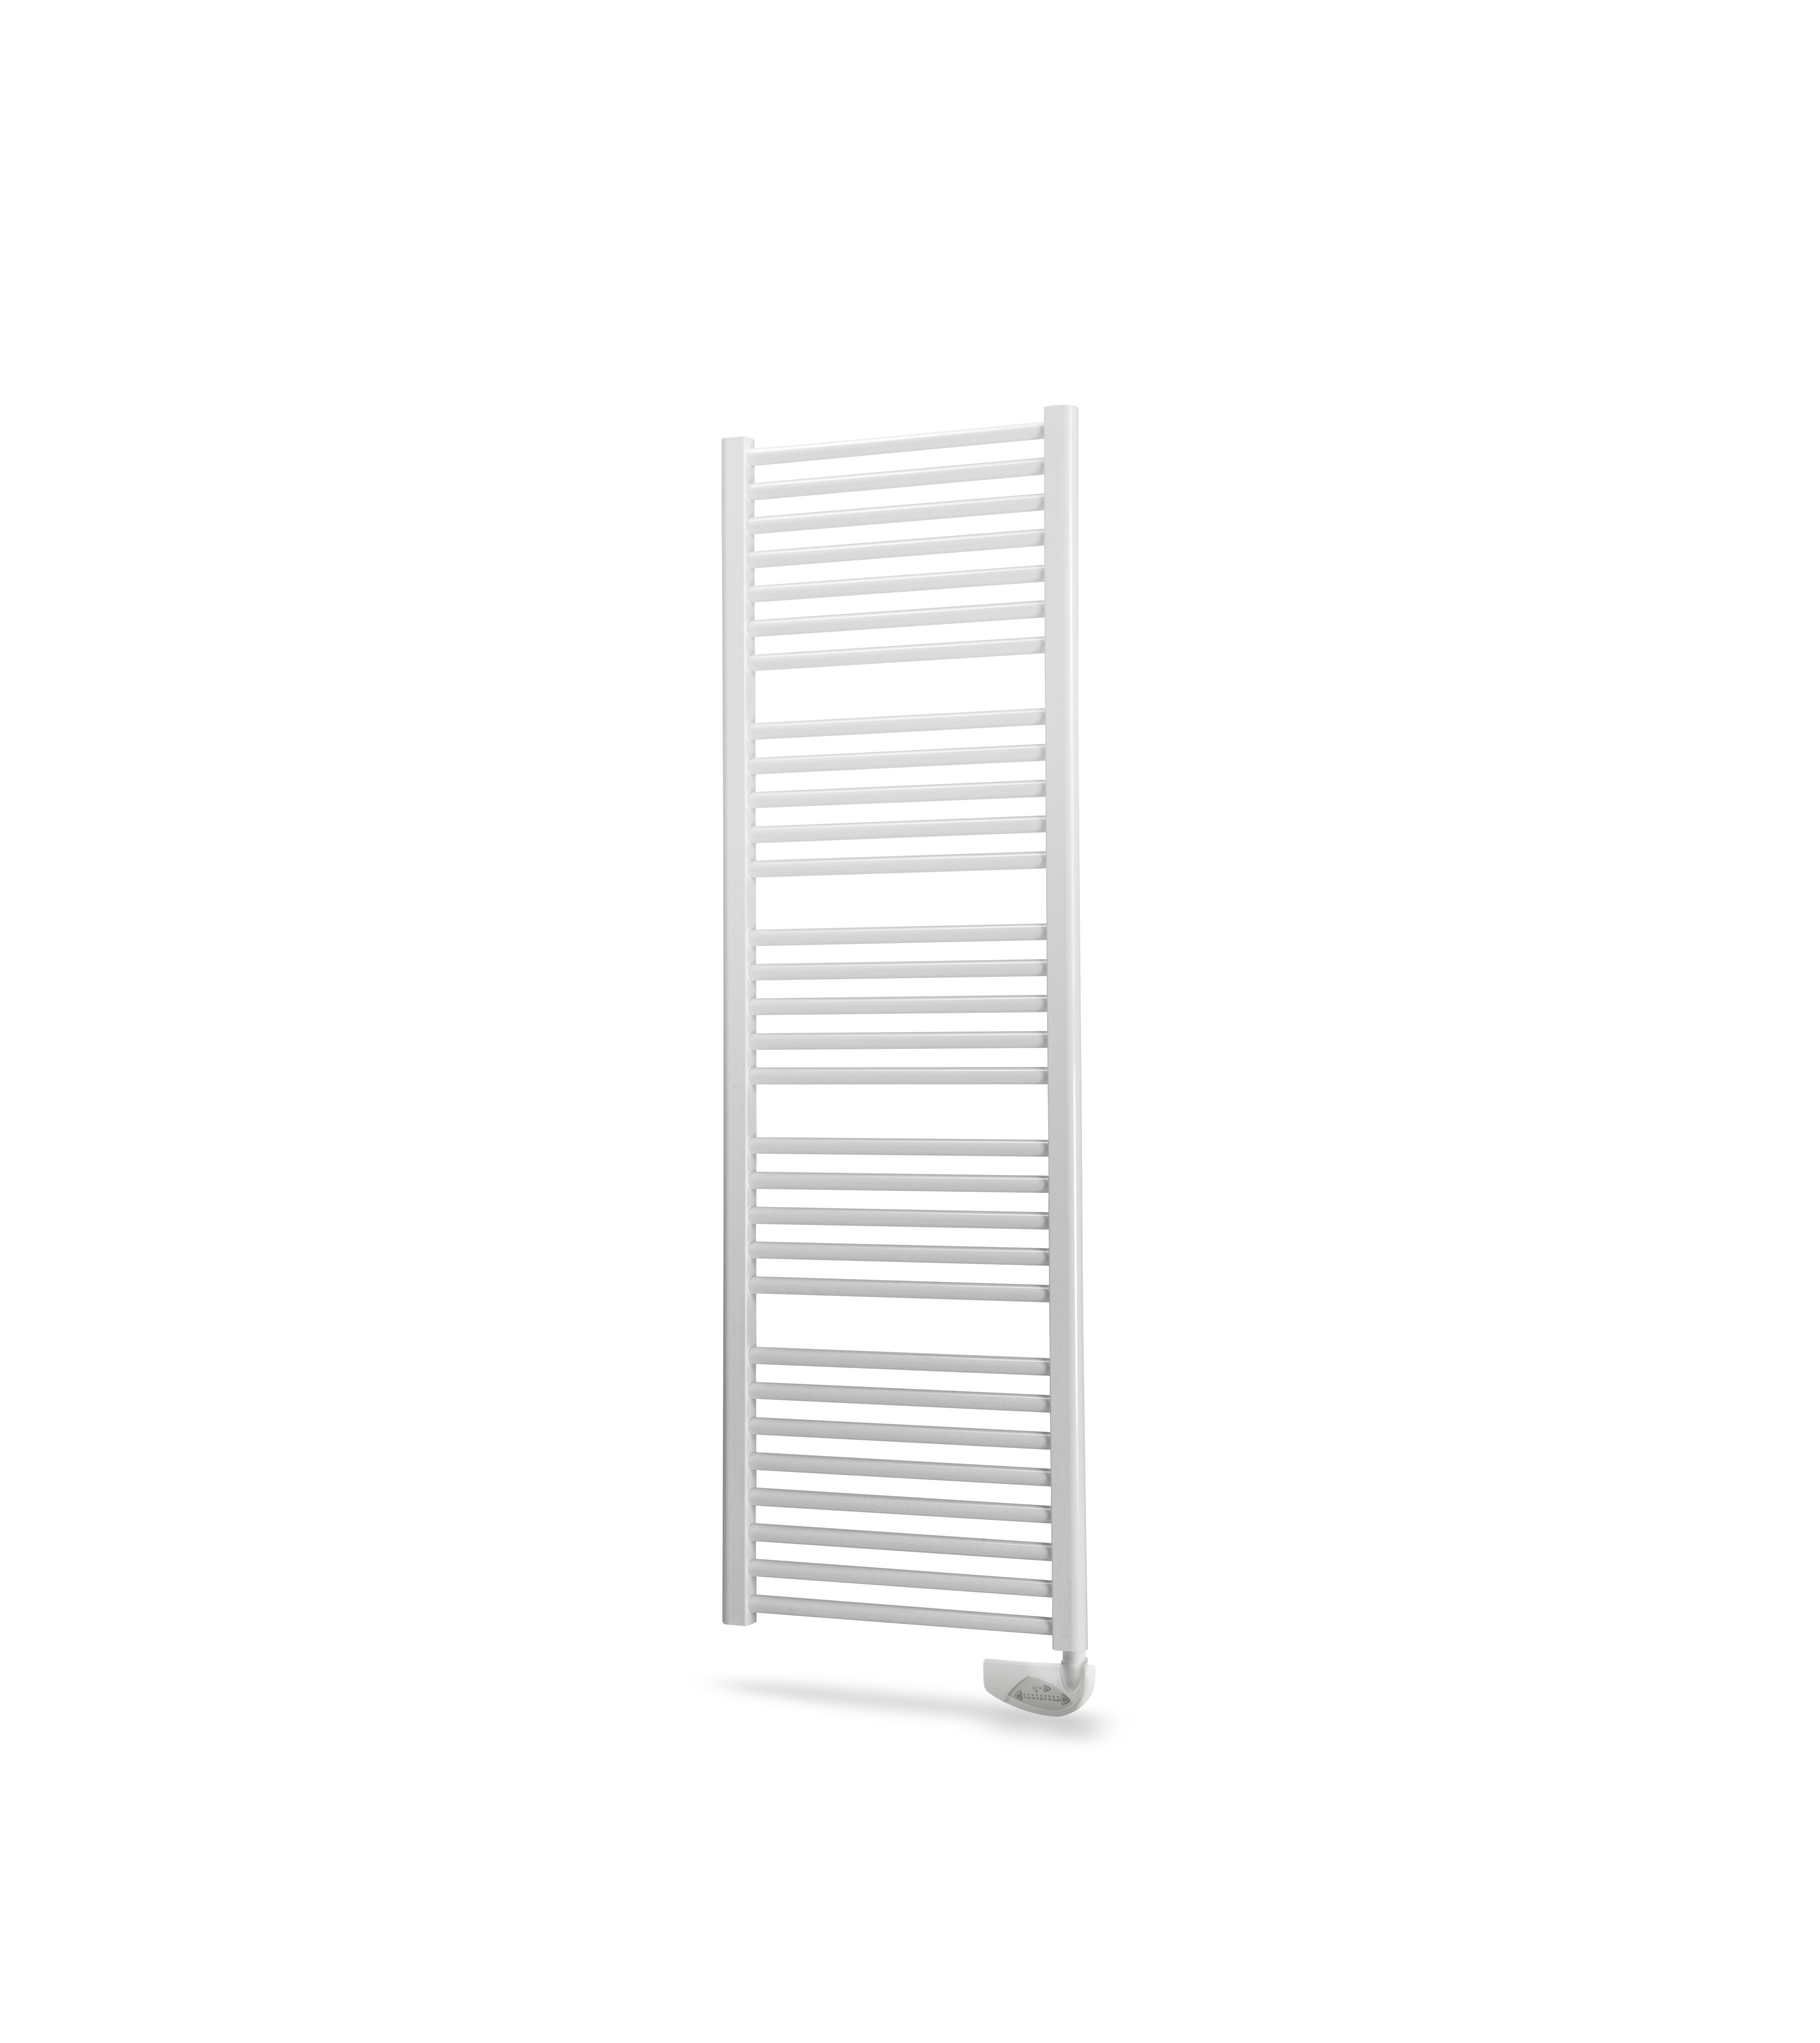 SAN Jarl Towel Warmer